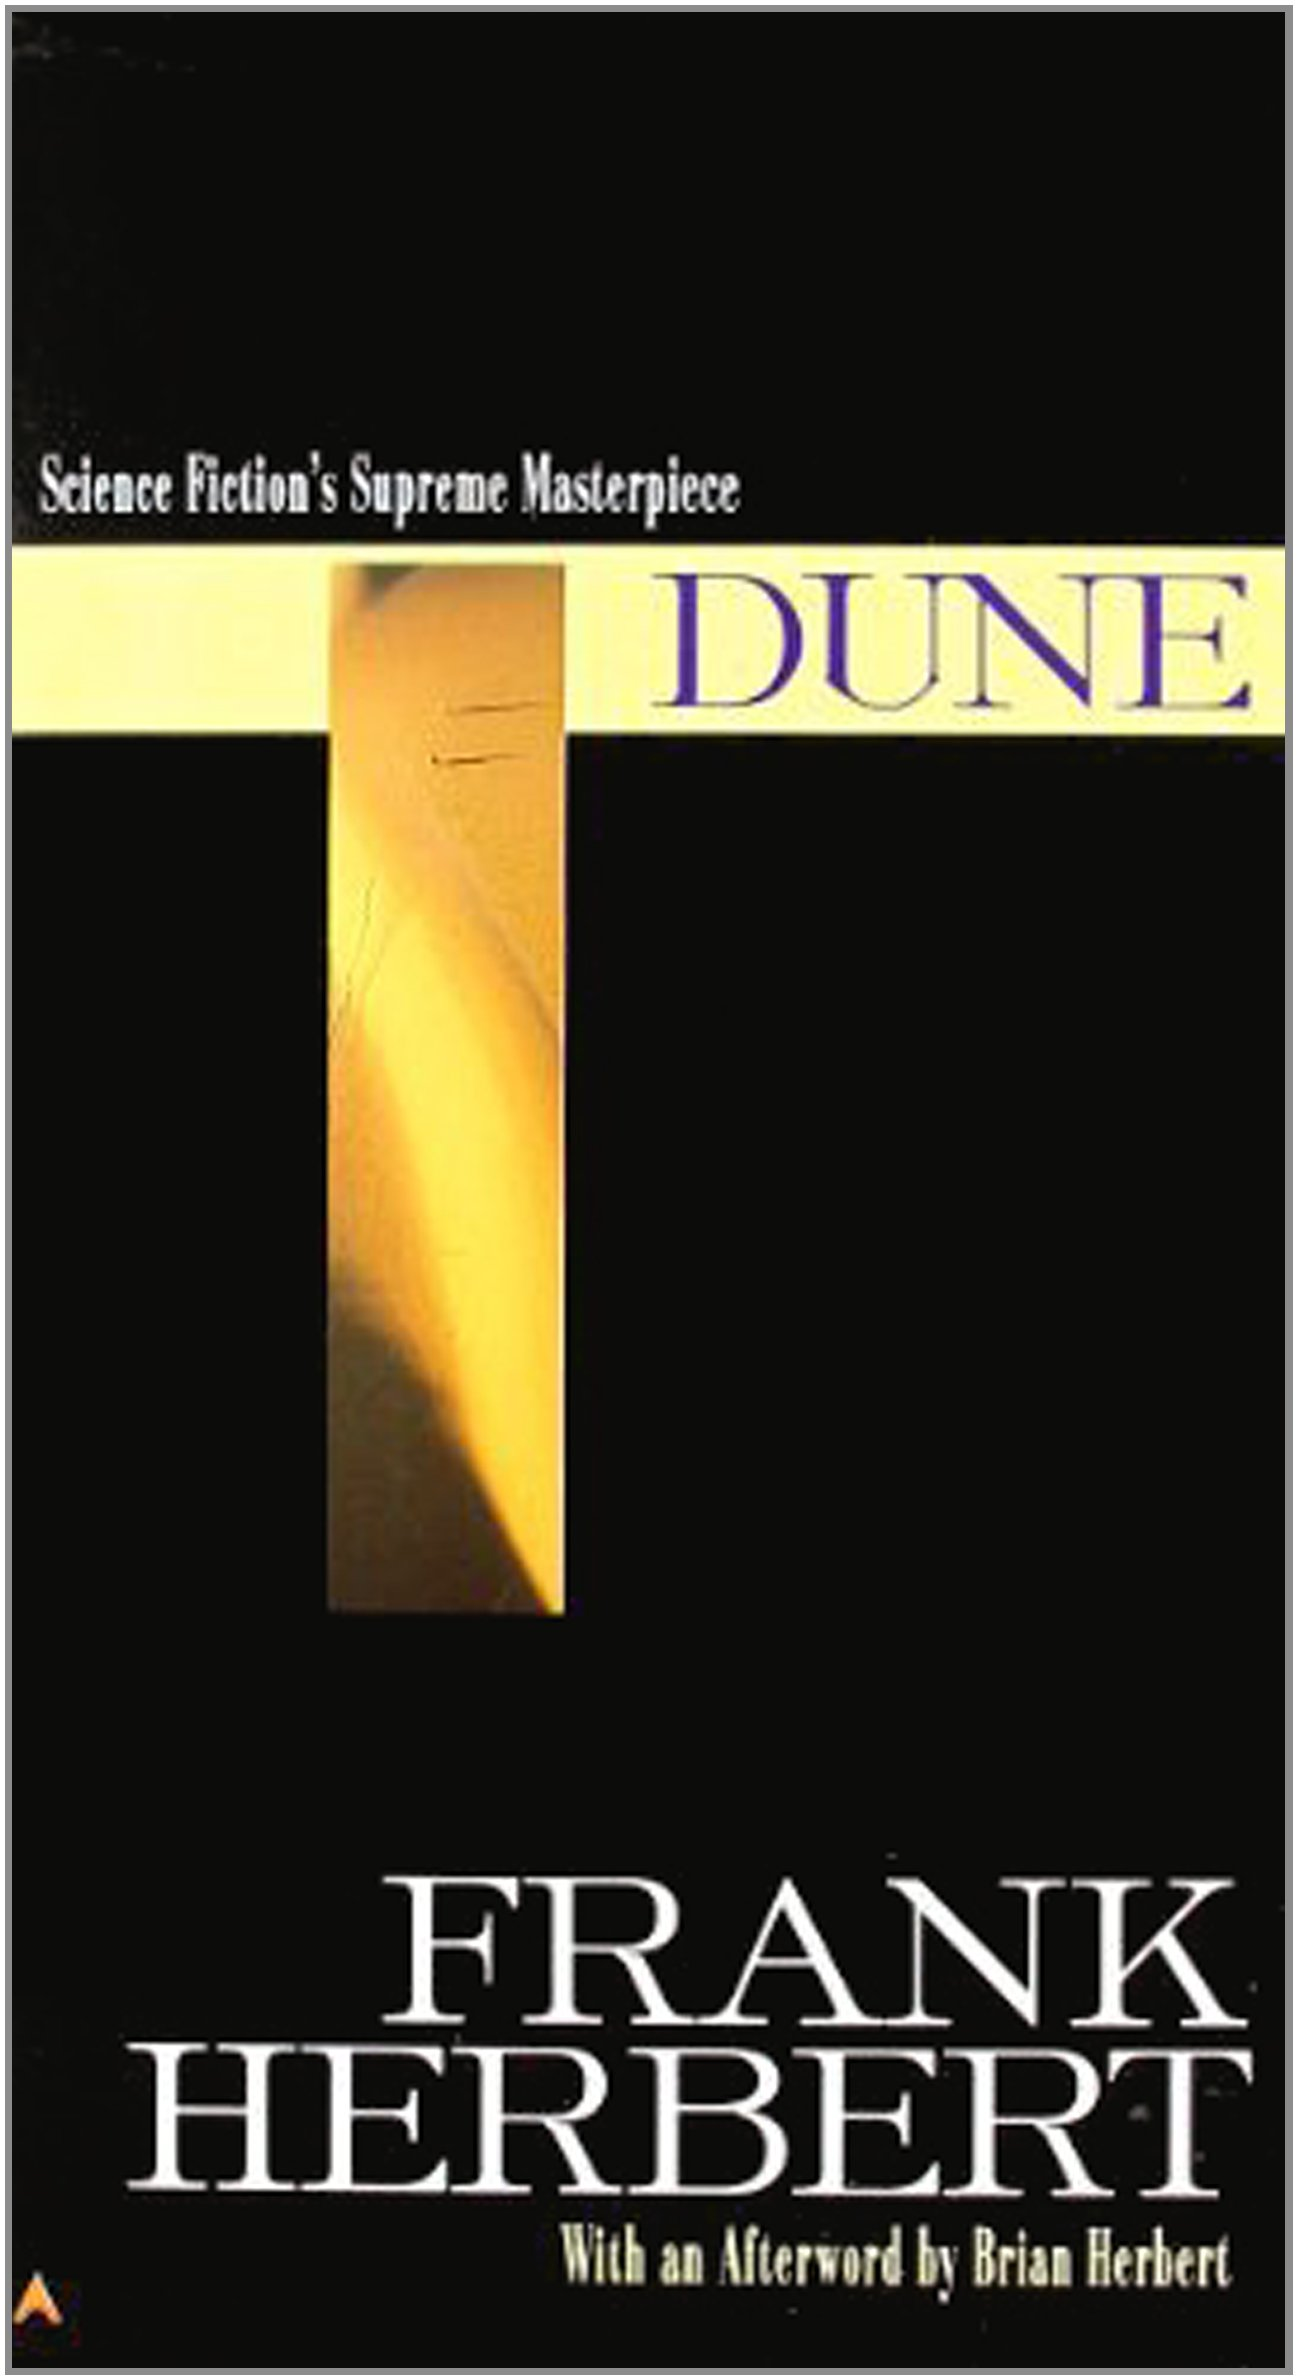 Image result for dune frank herbert cover